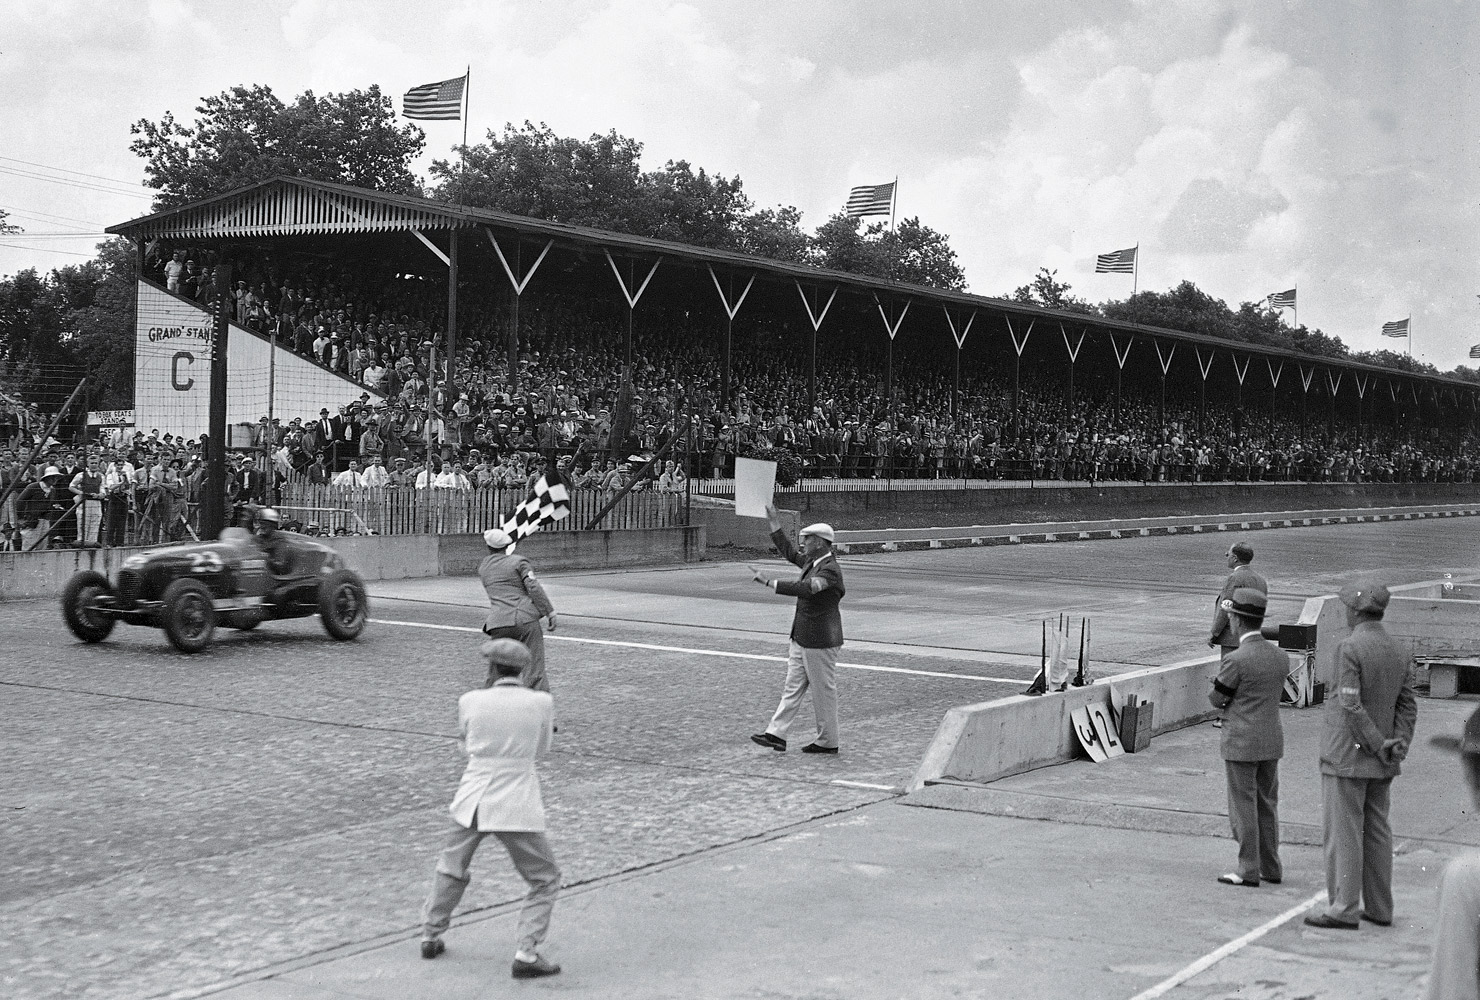 With no traffic to challenge Floyd Roberts at the finish, the started signaled his victory while moving safely toward the middle of the track.